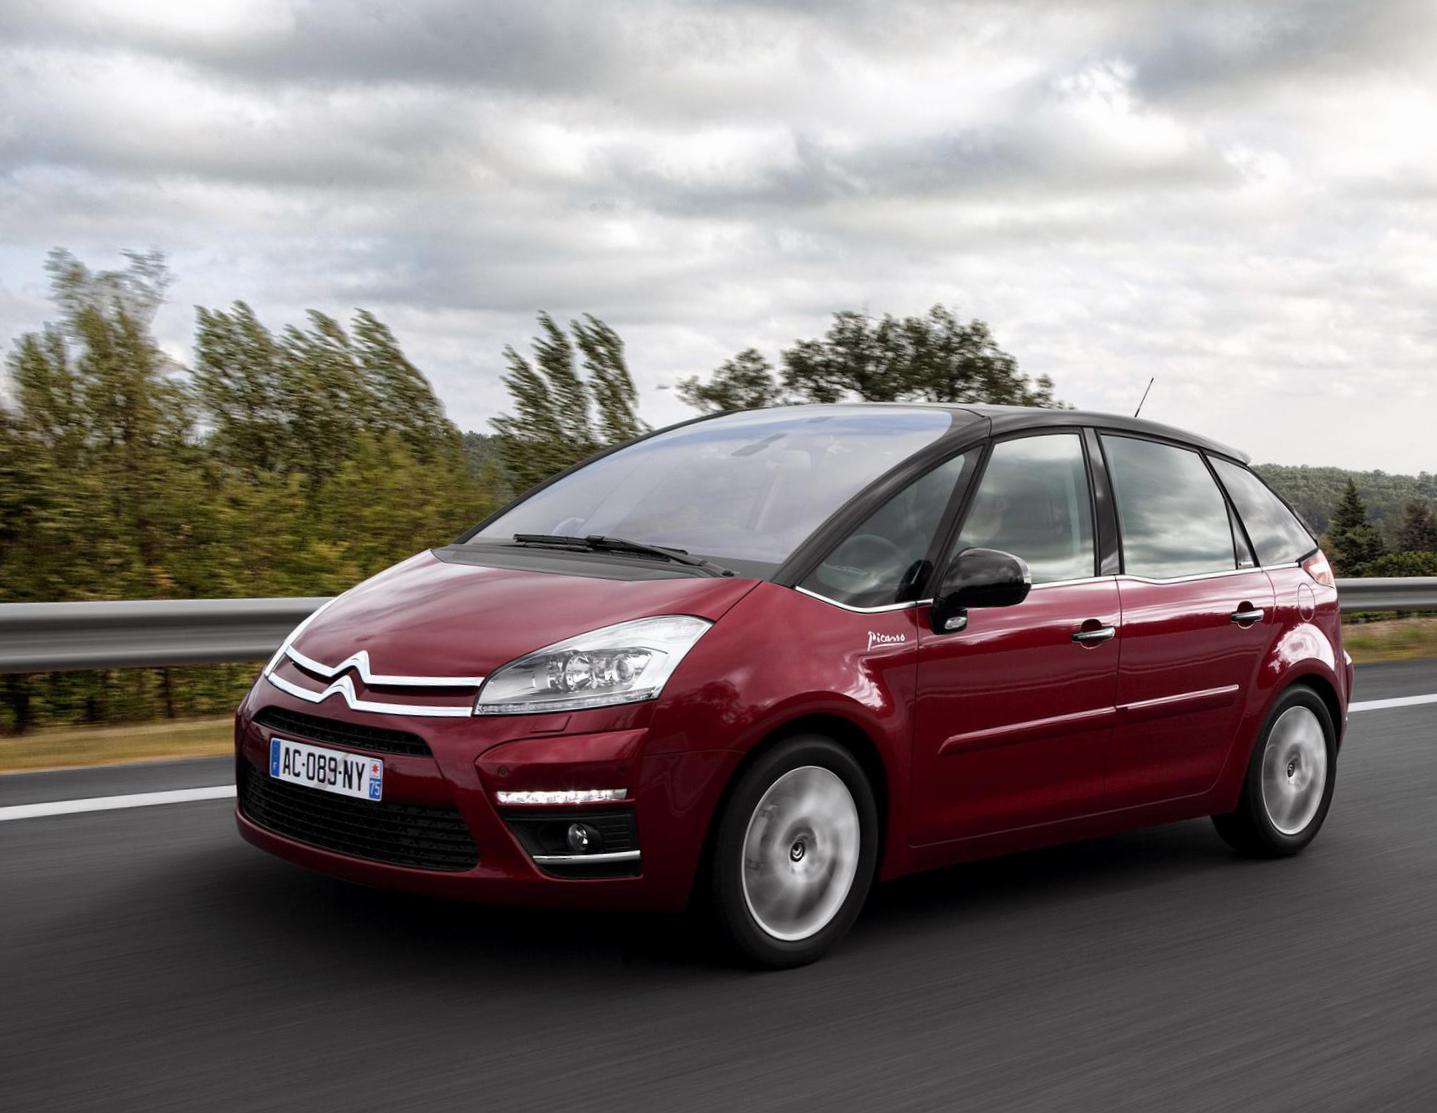 Citroen C4 Picasso Specifications hatchback